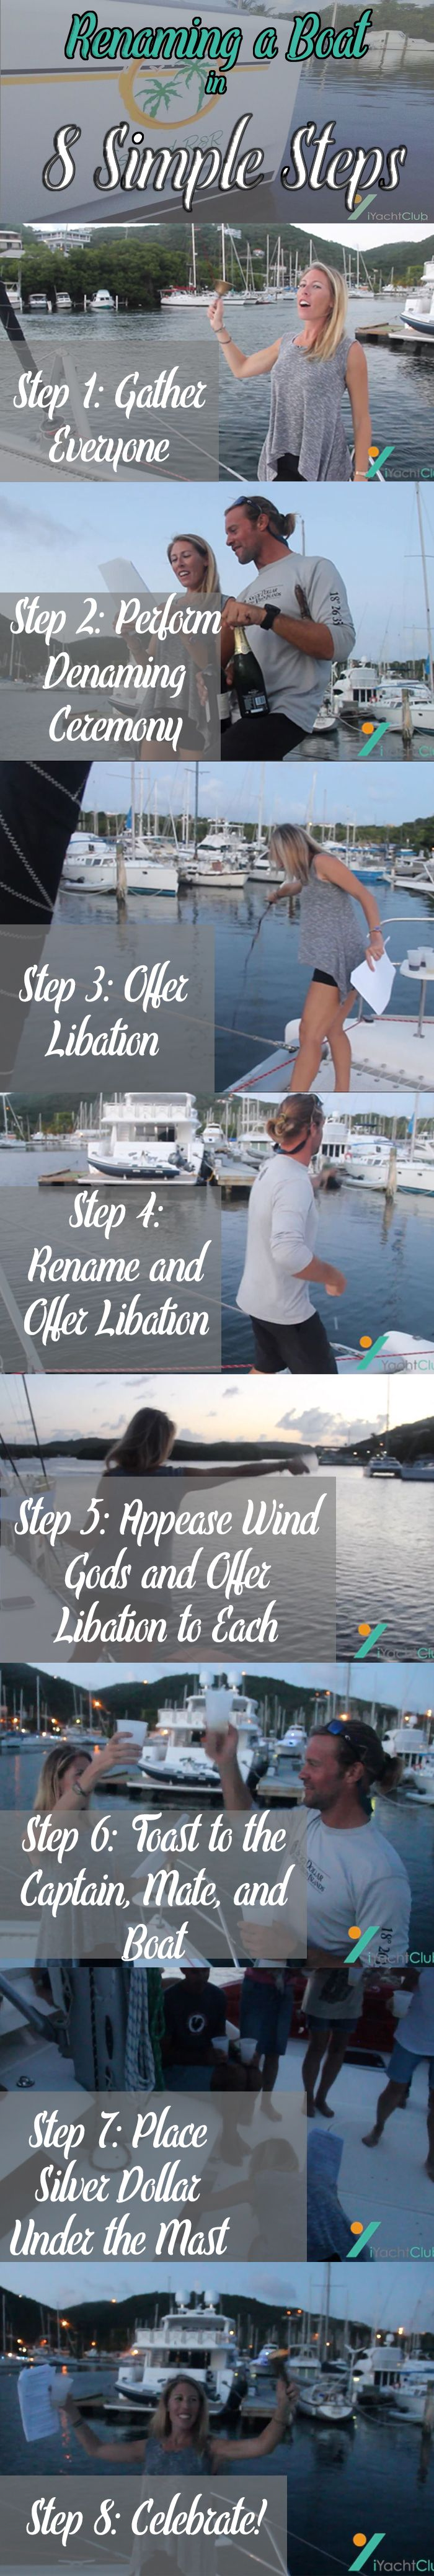 Renaming a Boat: Broken down into 8 Simple Steps to keep you on track during the ceremony.  Click the image to check out everything you need to know about a boat renaming ceremony!